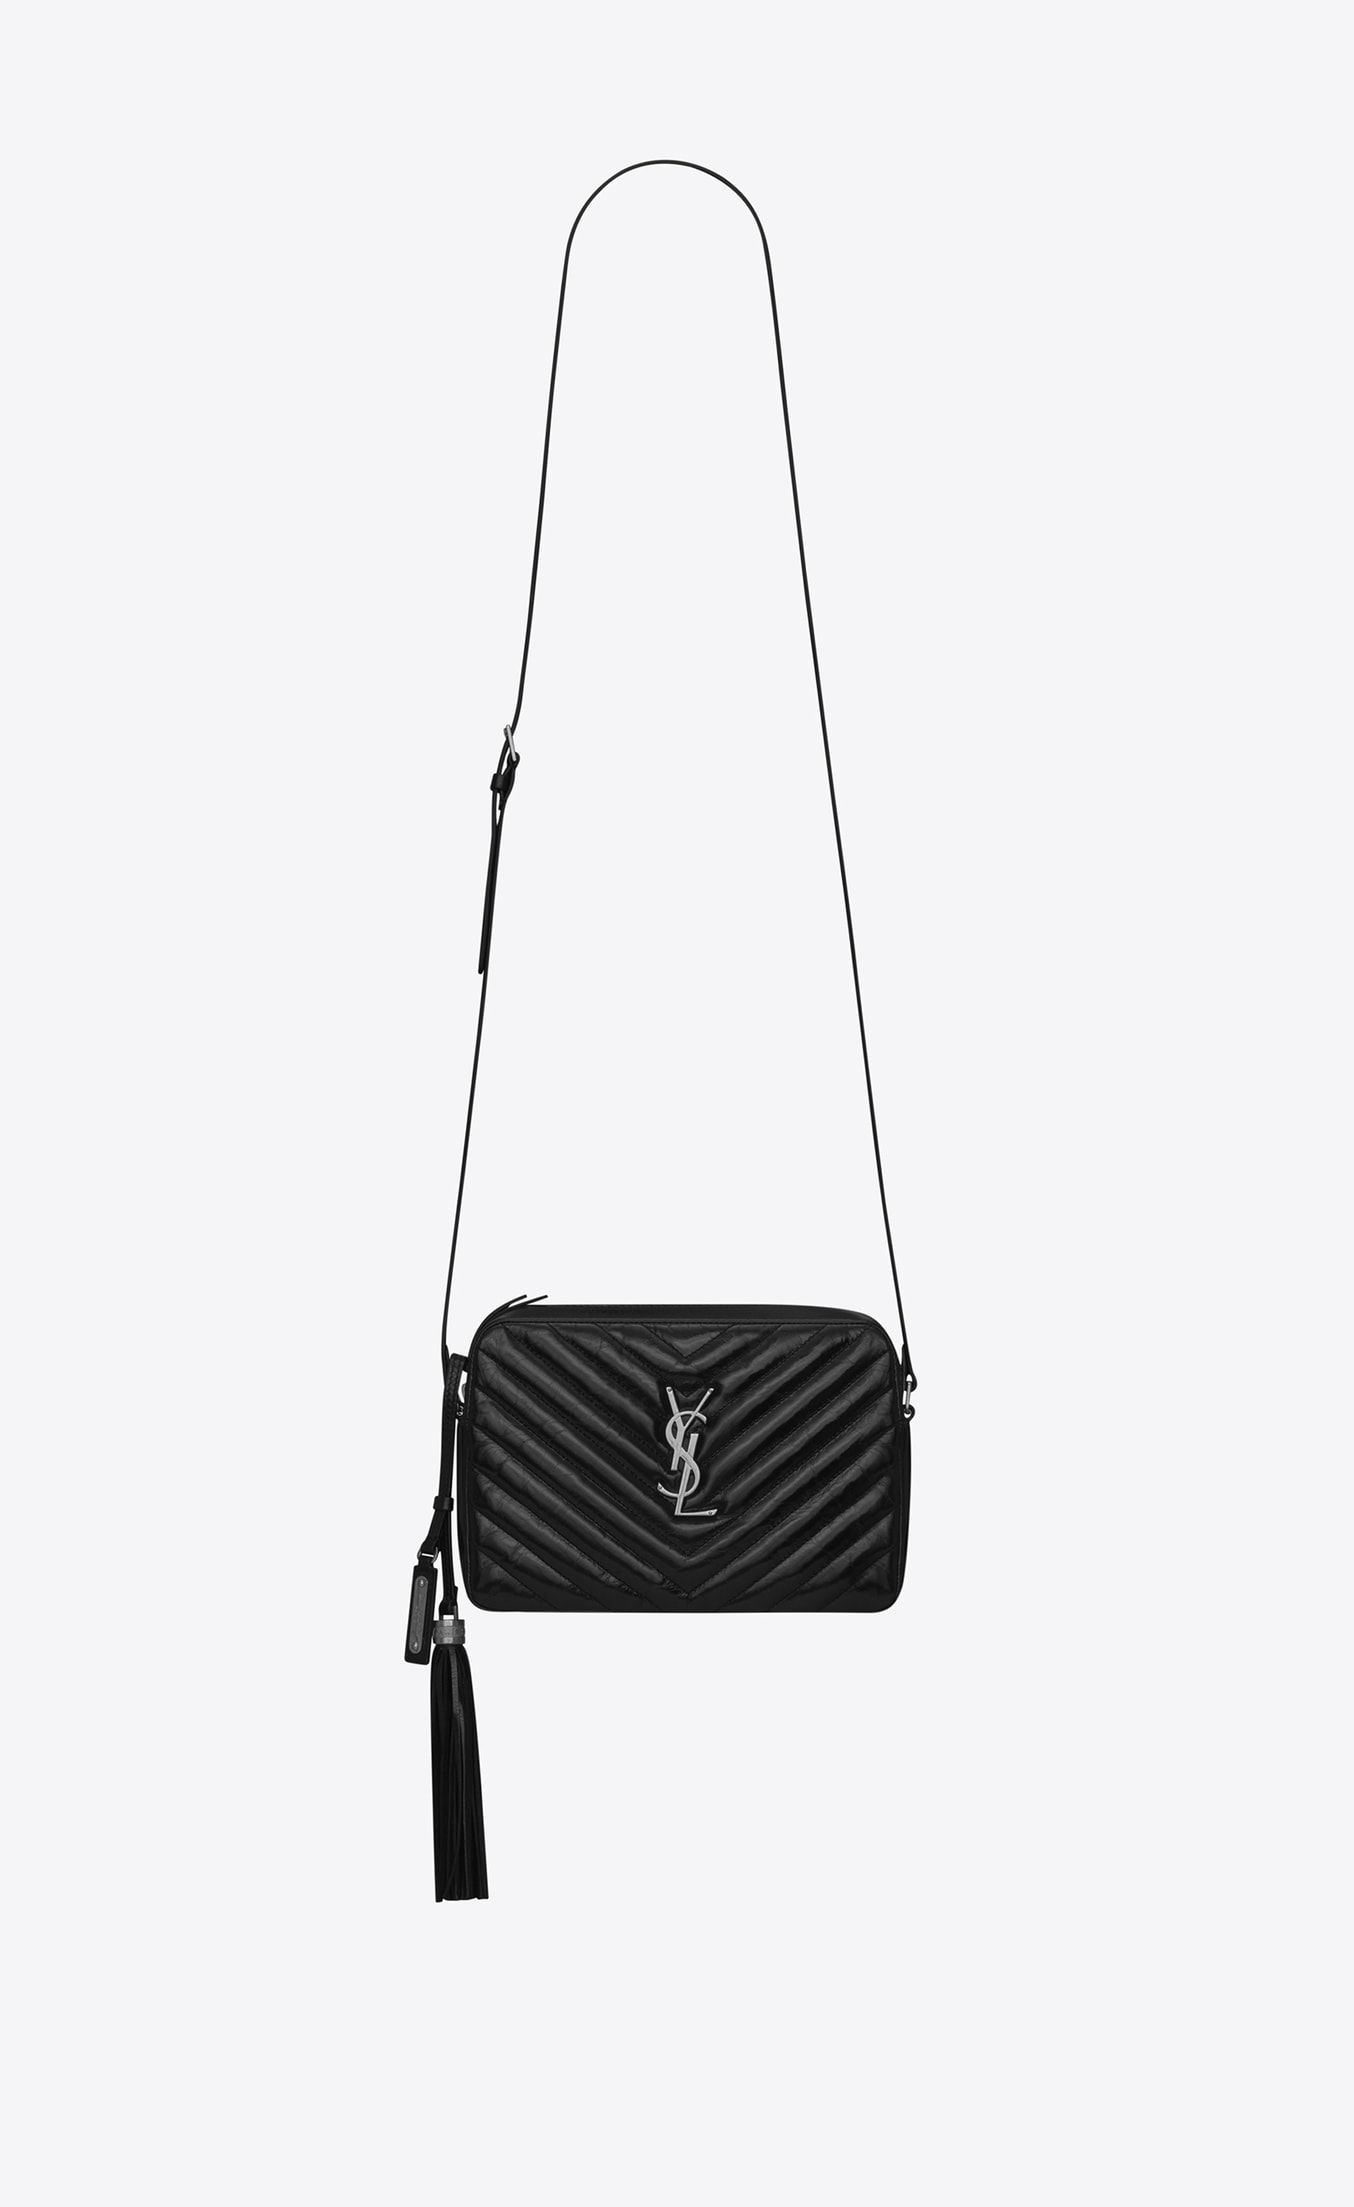 88e1e3c5a70b Saint Laurent Lou Camera Bag In Matelassé Leather